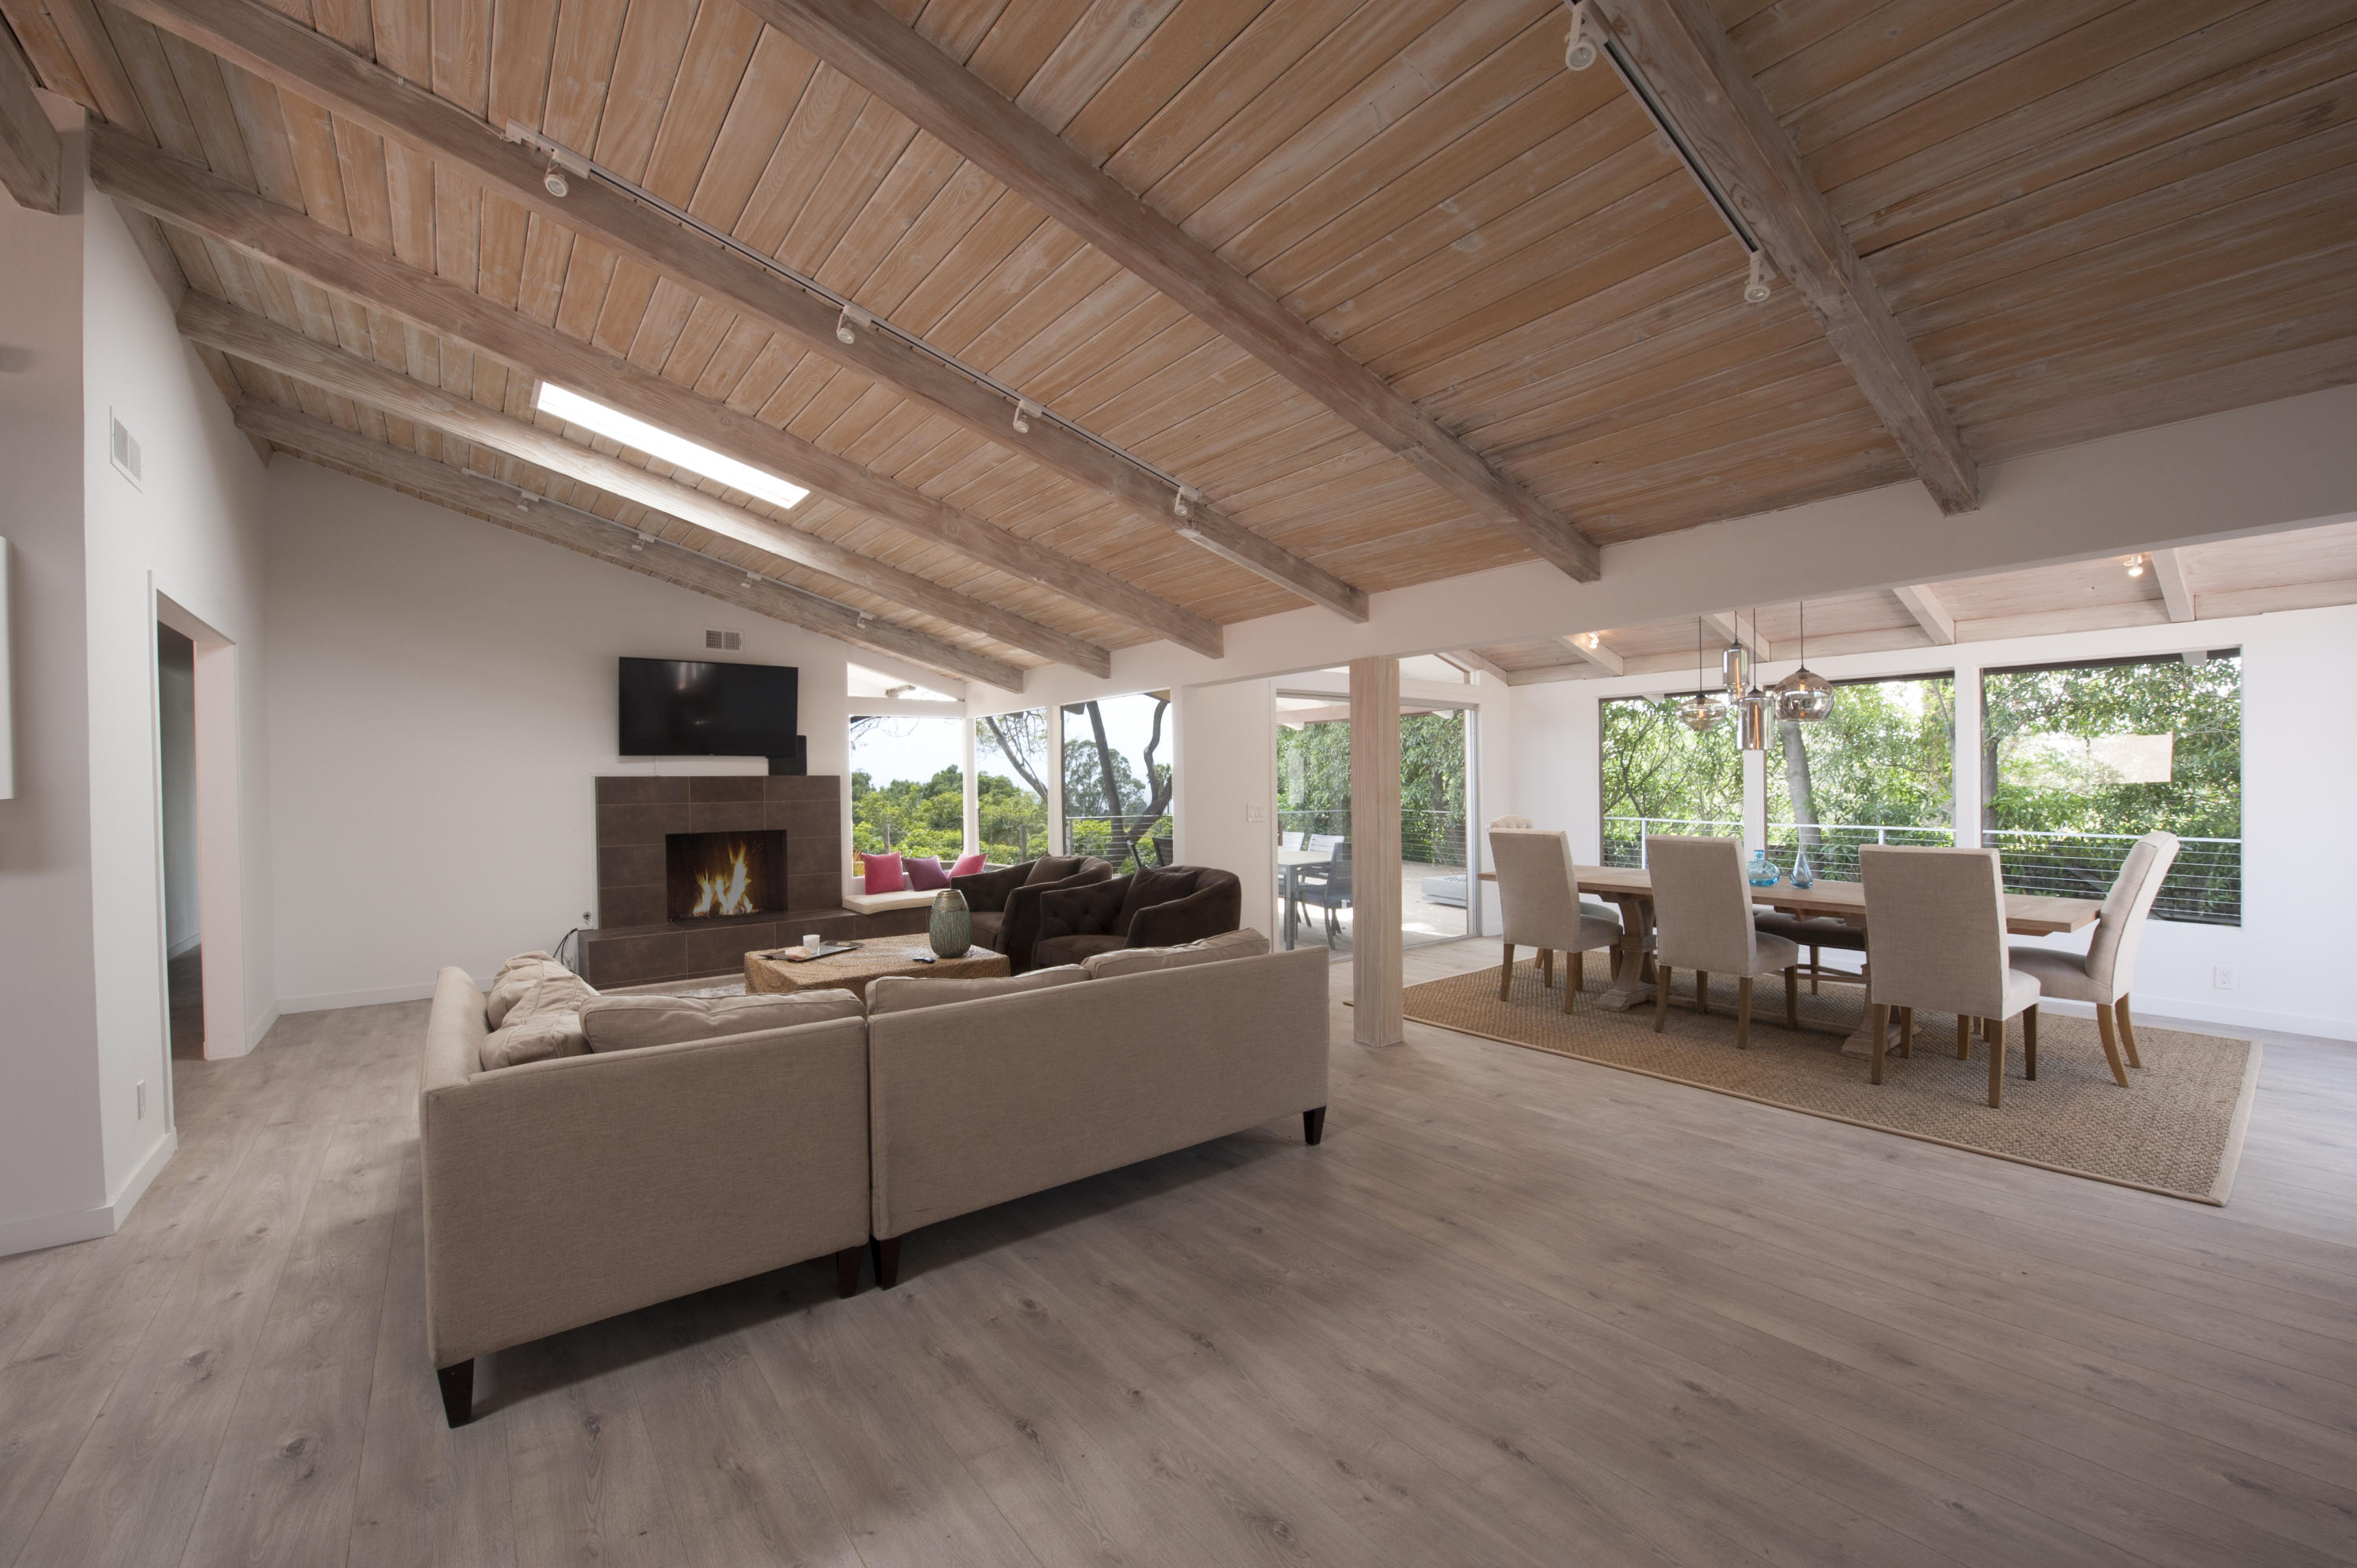 824 Alston Rd, SANTA BARBARA, California